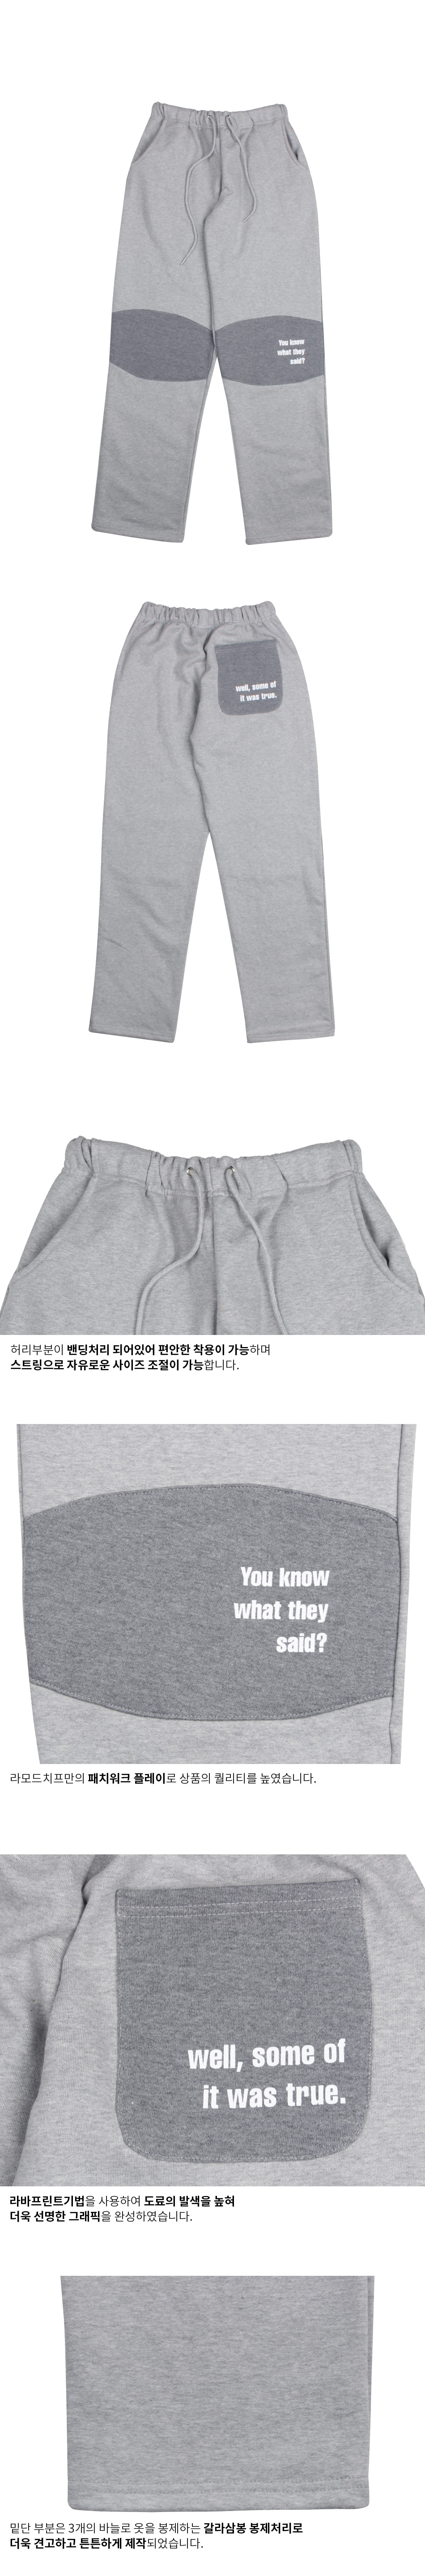 라모드치프(LAMODECHIEF) LAMC KNEE PATCH TRAINING PANTS (GRAY)